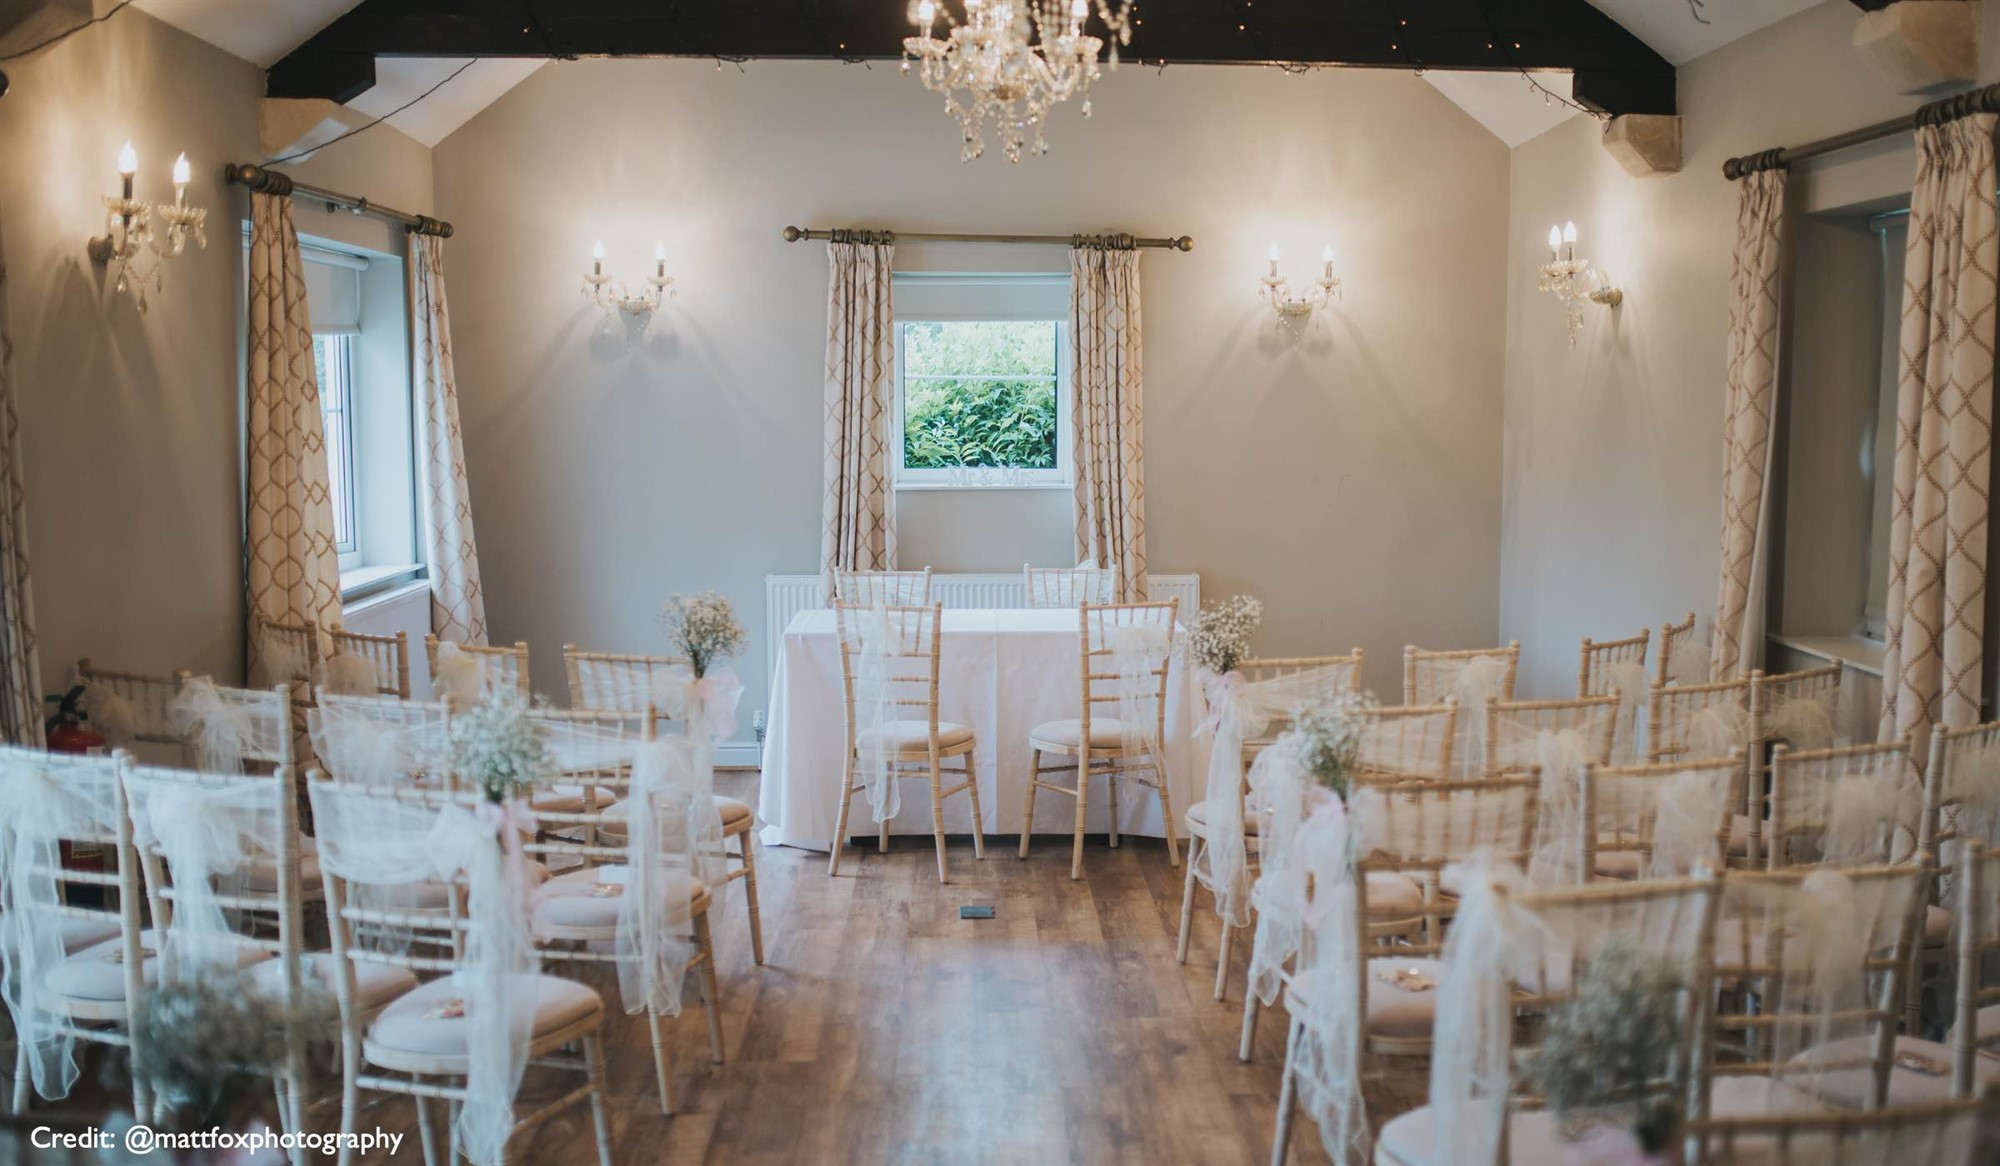 Converted Barn Ceremony Room at Widbrook Grange